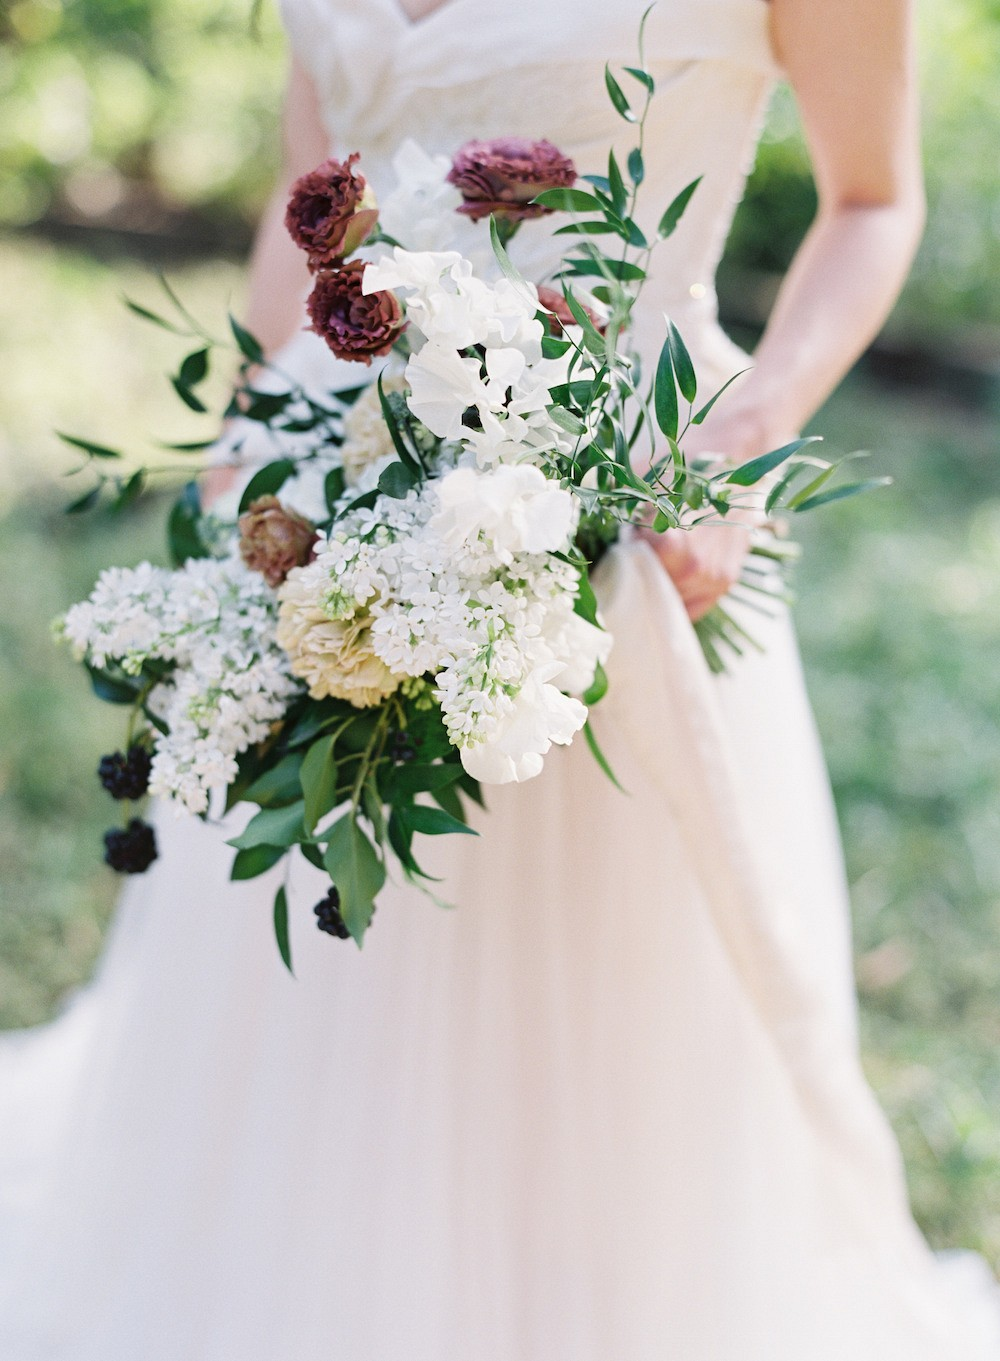 Fairytale Garden Wedding Inspiration